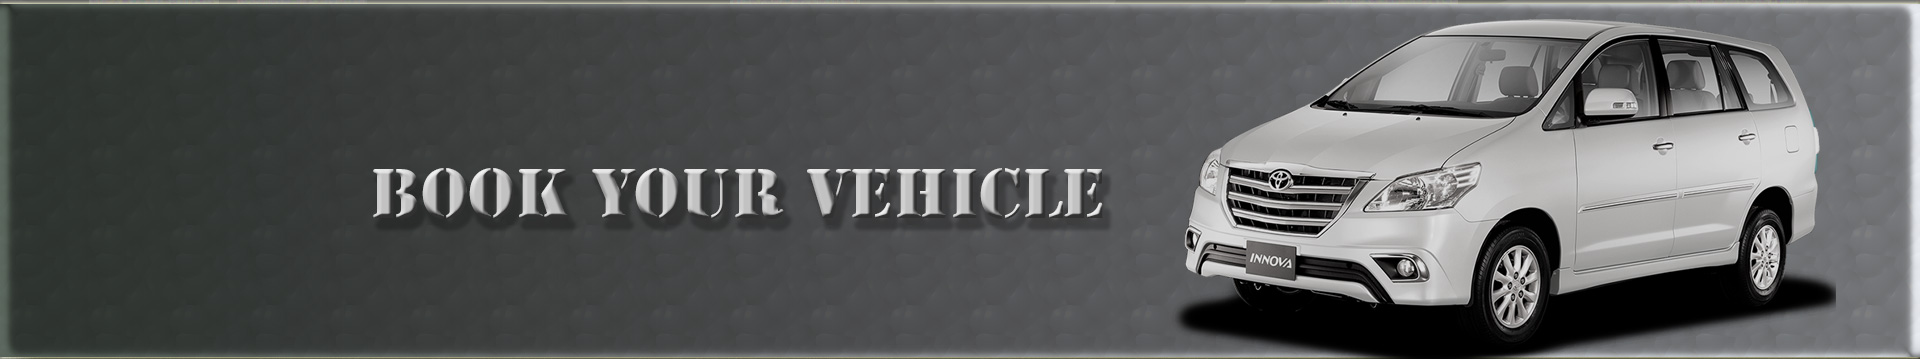 book your vehicle